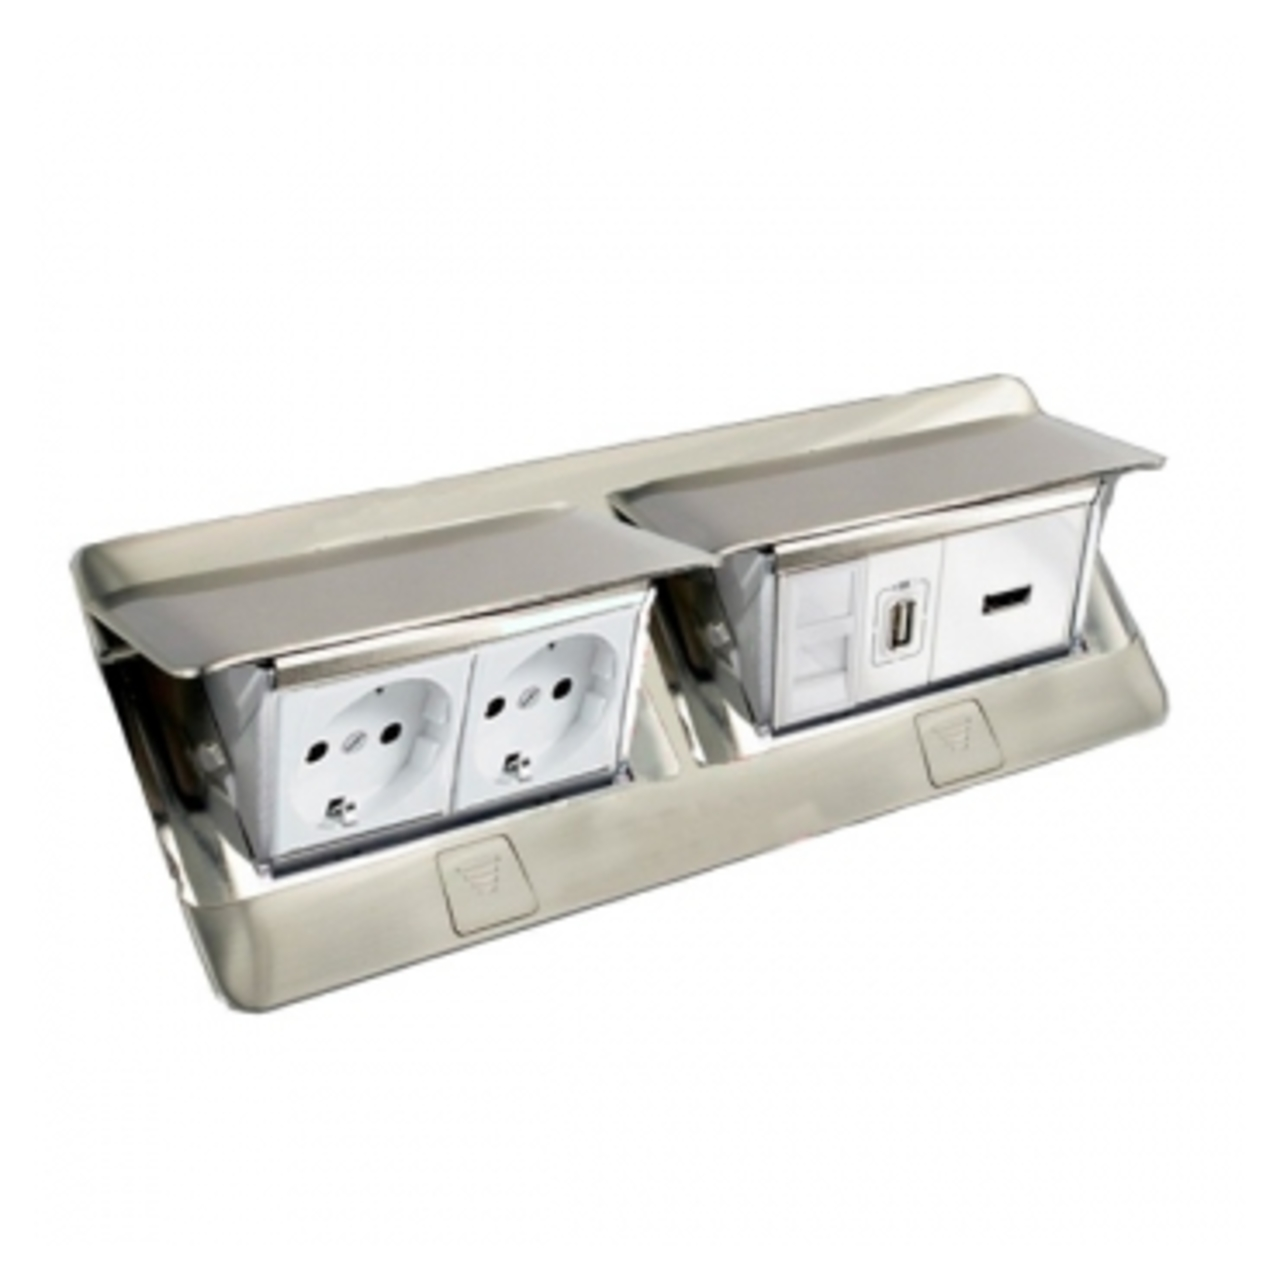 Legrand 8 Module Pop Up Floor Box Brushed Stainless